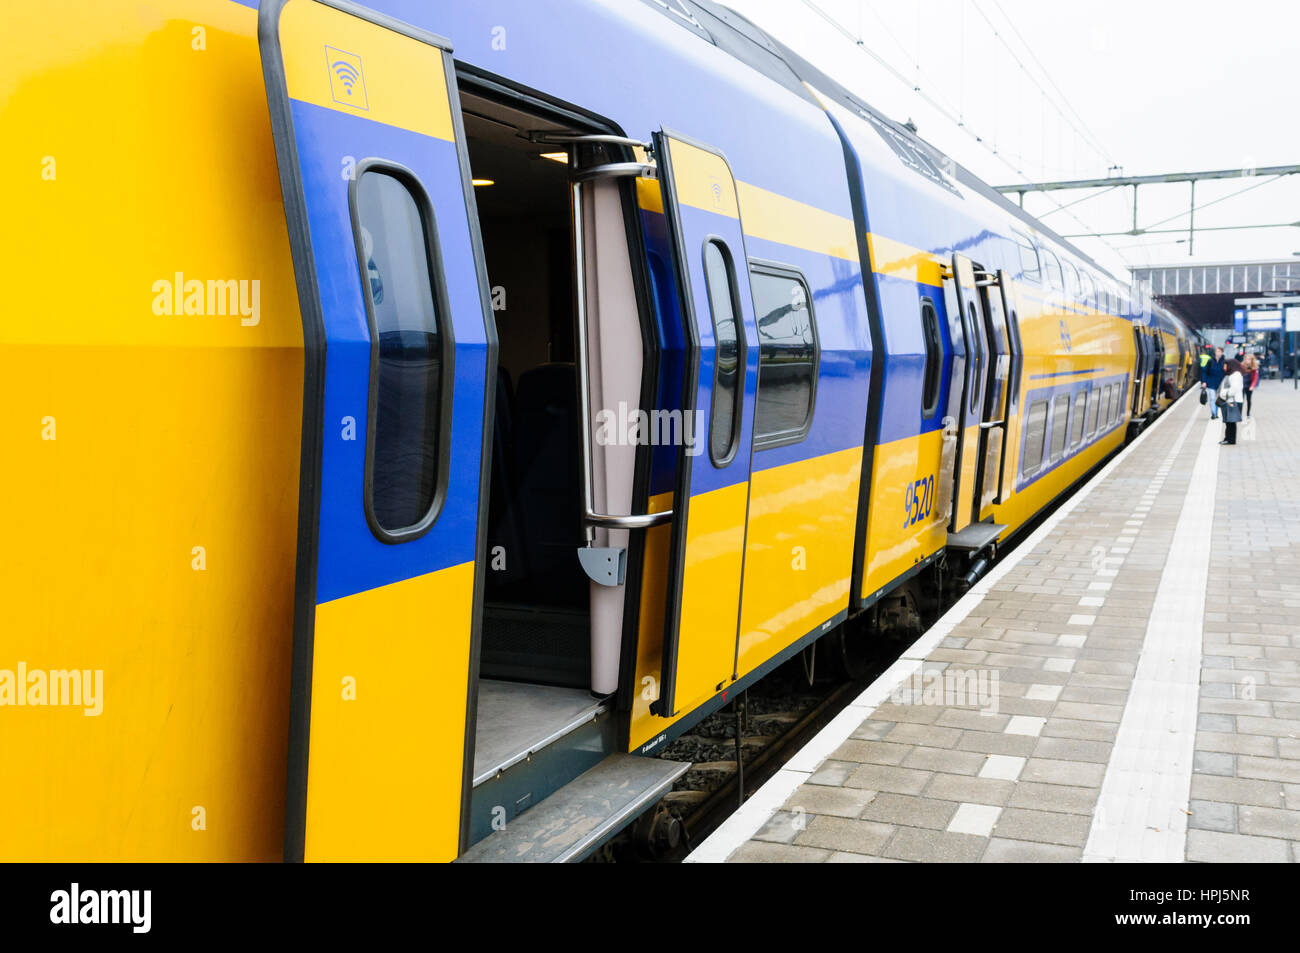 Nederlandse Spoorwegen yellow and blue train at a platform in the Netherlands - Stock Image